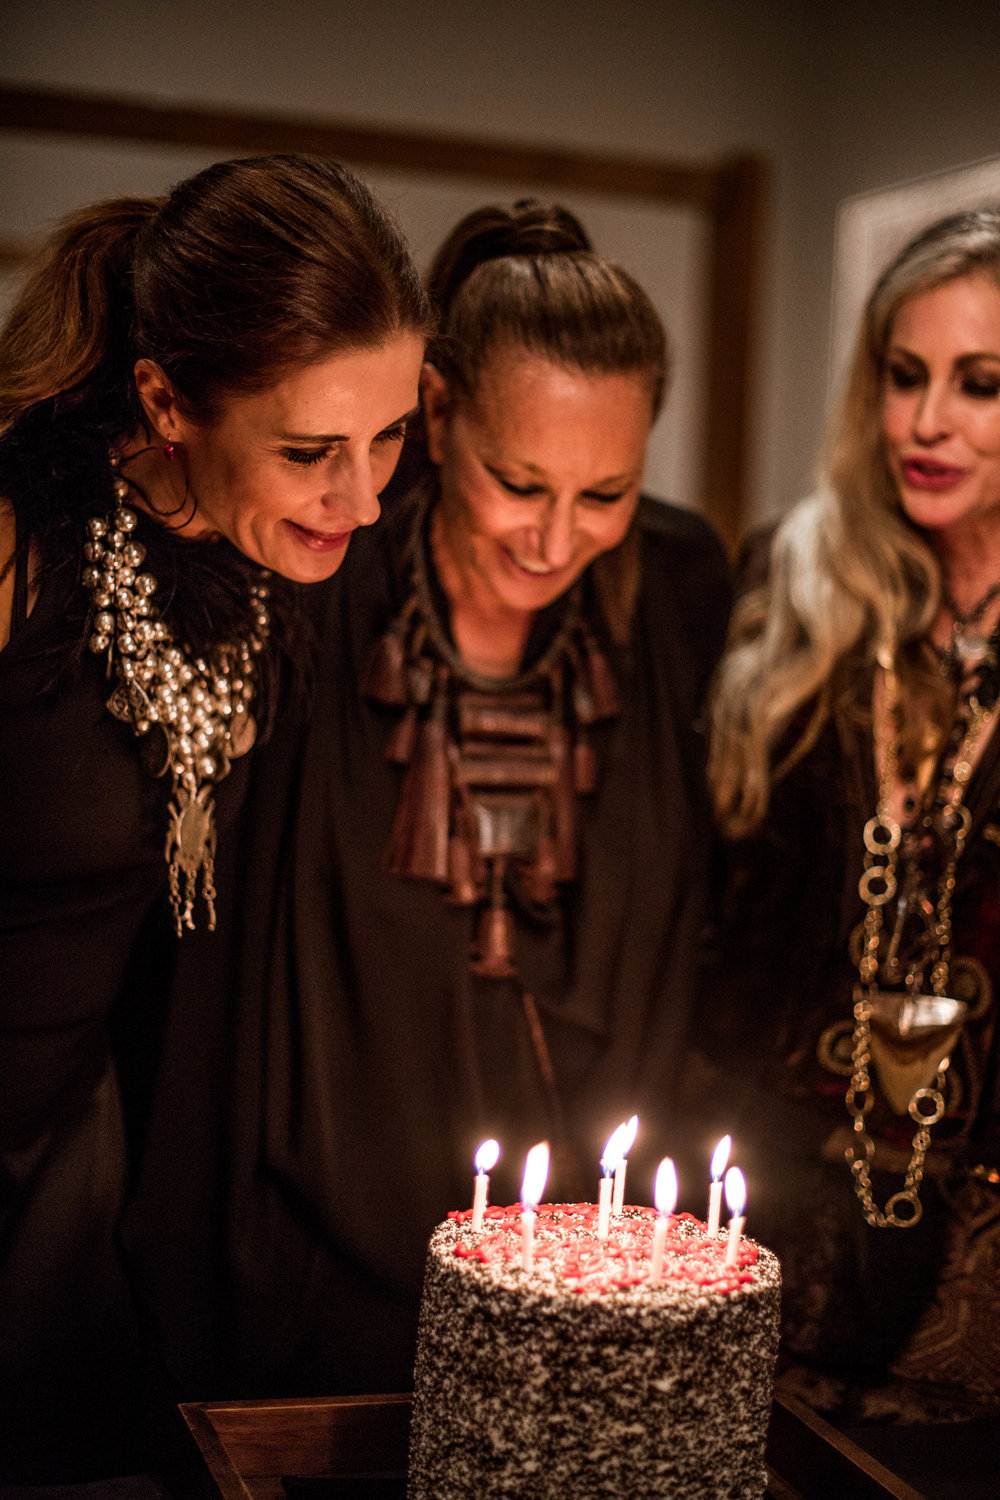 It was also the birthday of our hostess, Donna, which we celebrated with cake / Photo: Charlie Johnson.